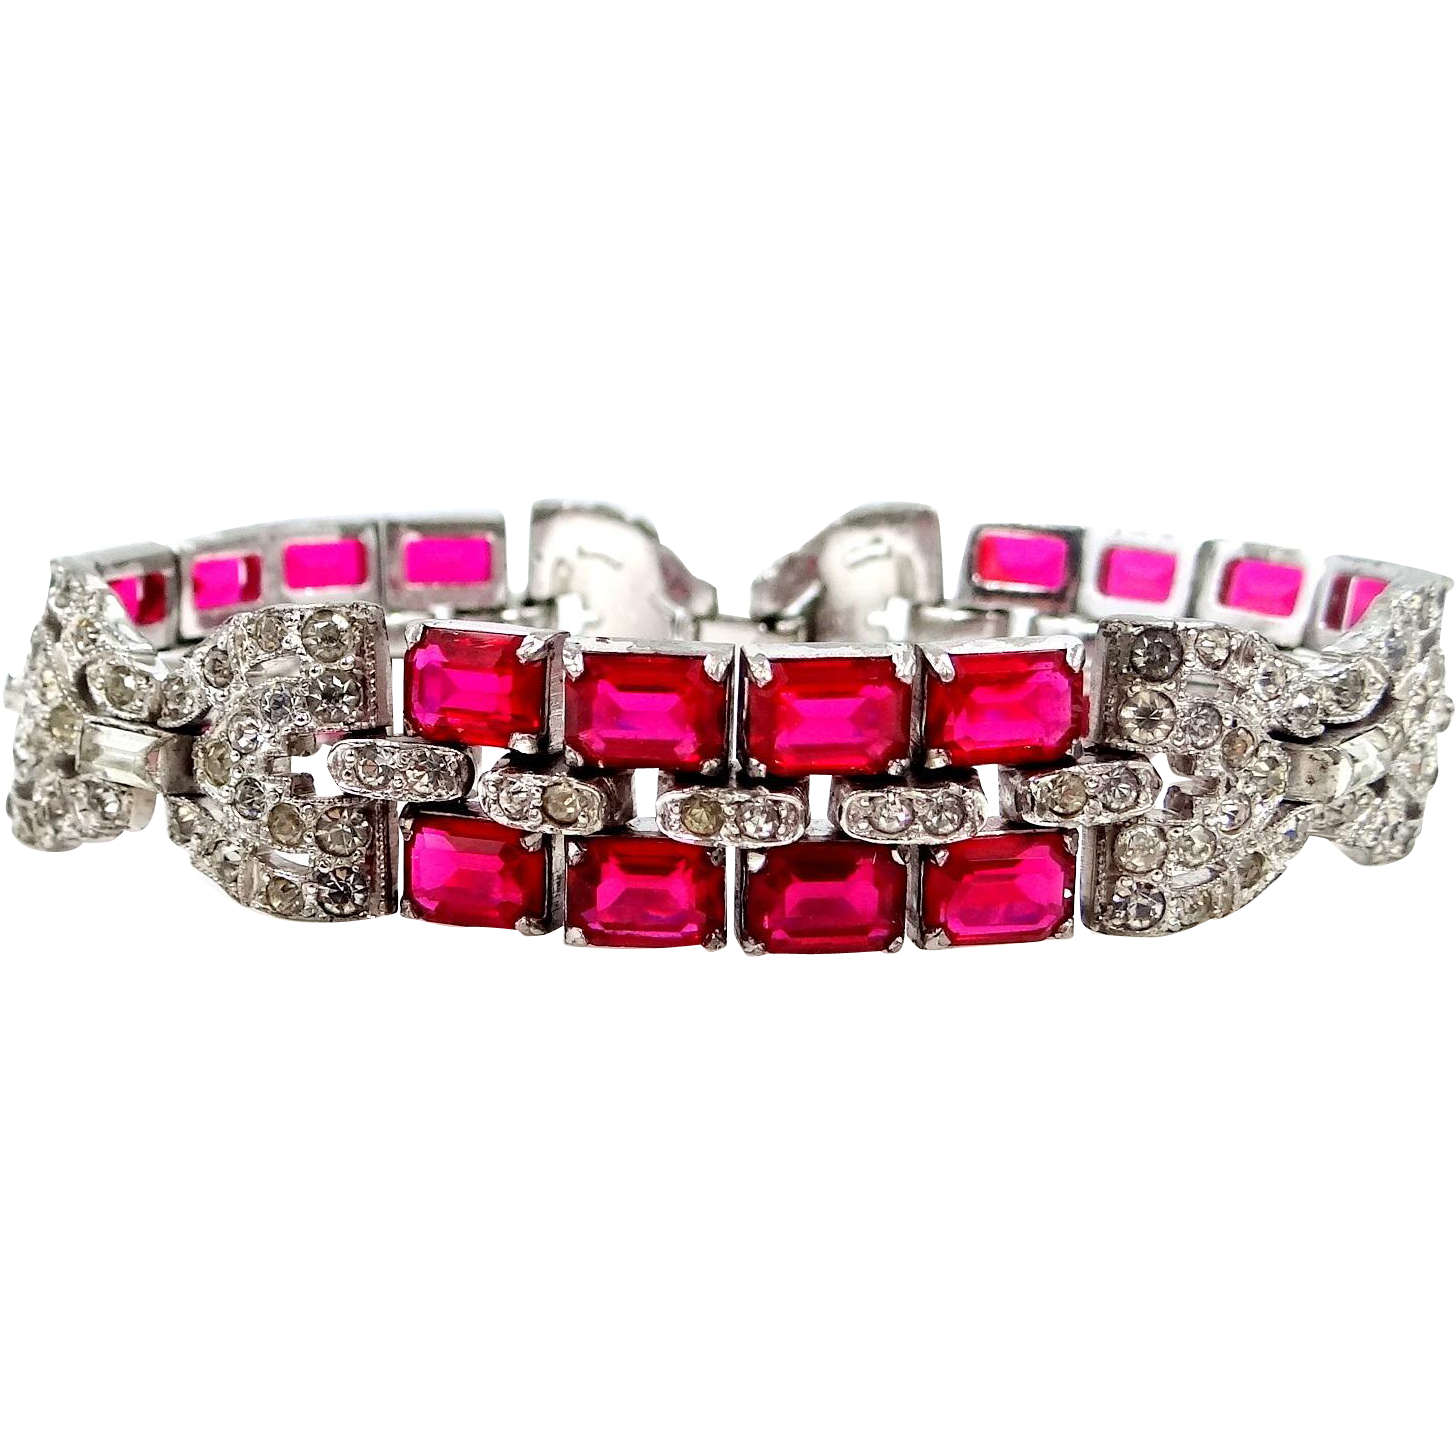 kTf Trifari 'Alfred Philippe' Pave and Emerald Cut Ruby Glass Bracelet